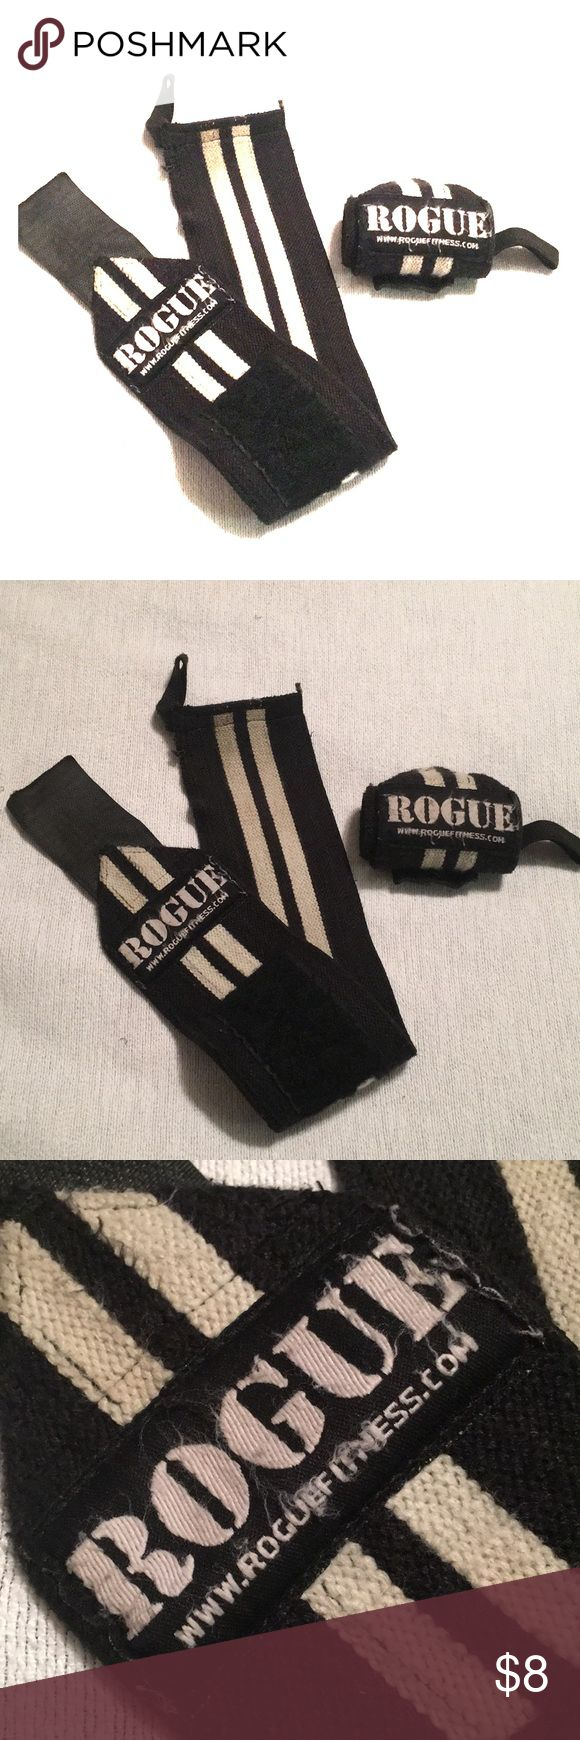 """Rogue Fitness 18"""" Wrist Wrap Lifting Straps BRAND: Rogue Fitness SIZE: 18"""" CONDITION: 5/10 DAMAGE/WEAR: Used COLOR: Black, White  Used but lots of life left. 18"""" Straps Used for powerlifting, crossfit, OLY lifting and gymnastic support. Thumb loops for easy on/off. Heavy duty velcro. Do show piling and fuzz from multiple uses, but have some lifting left in them. Smoke & pet free. Rogue Fitness Accessories"""